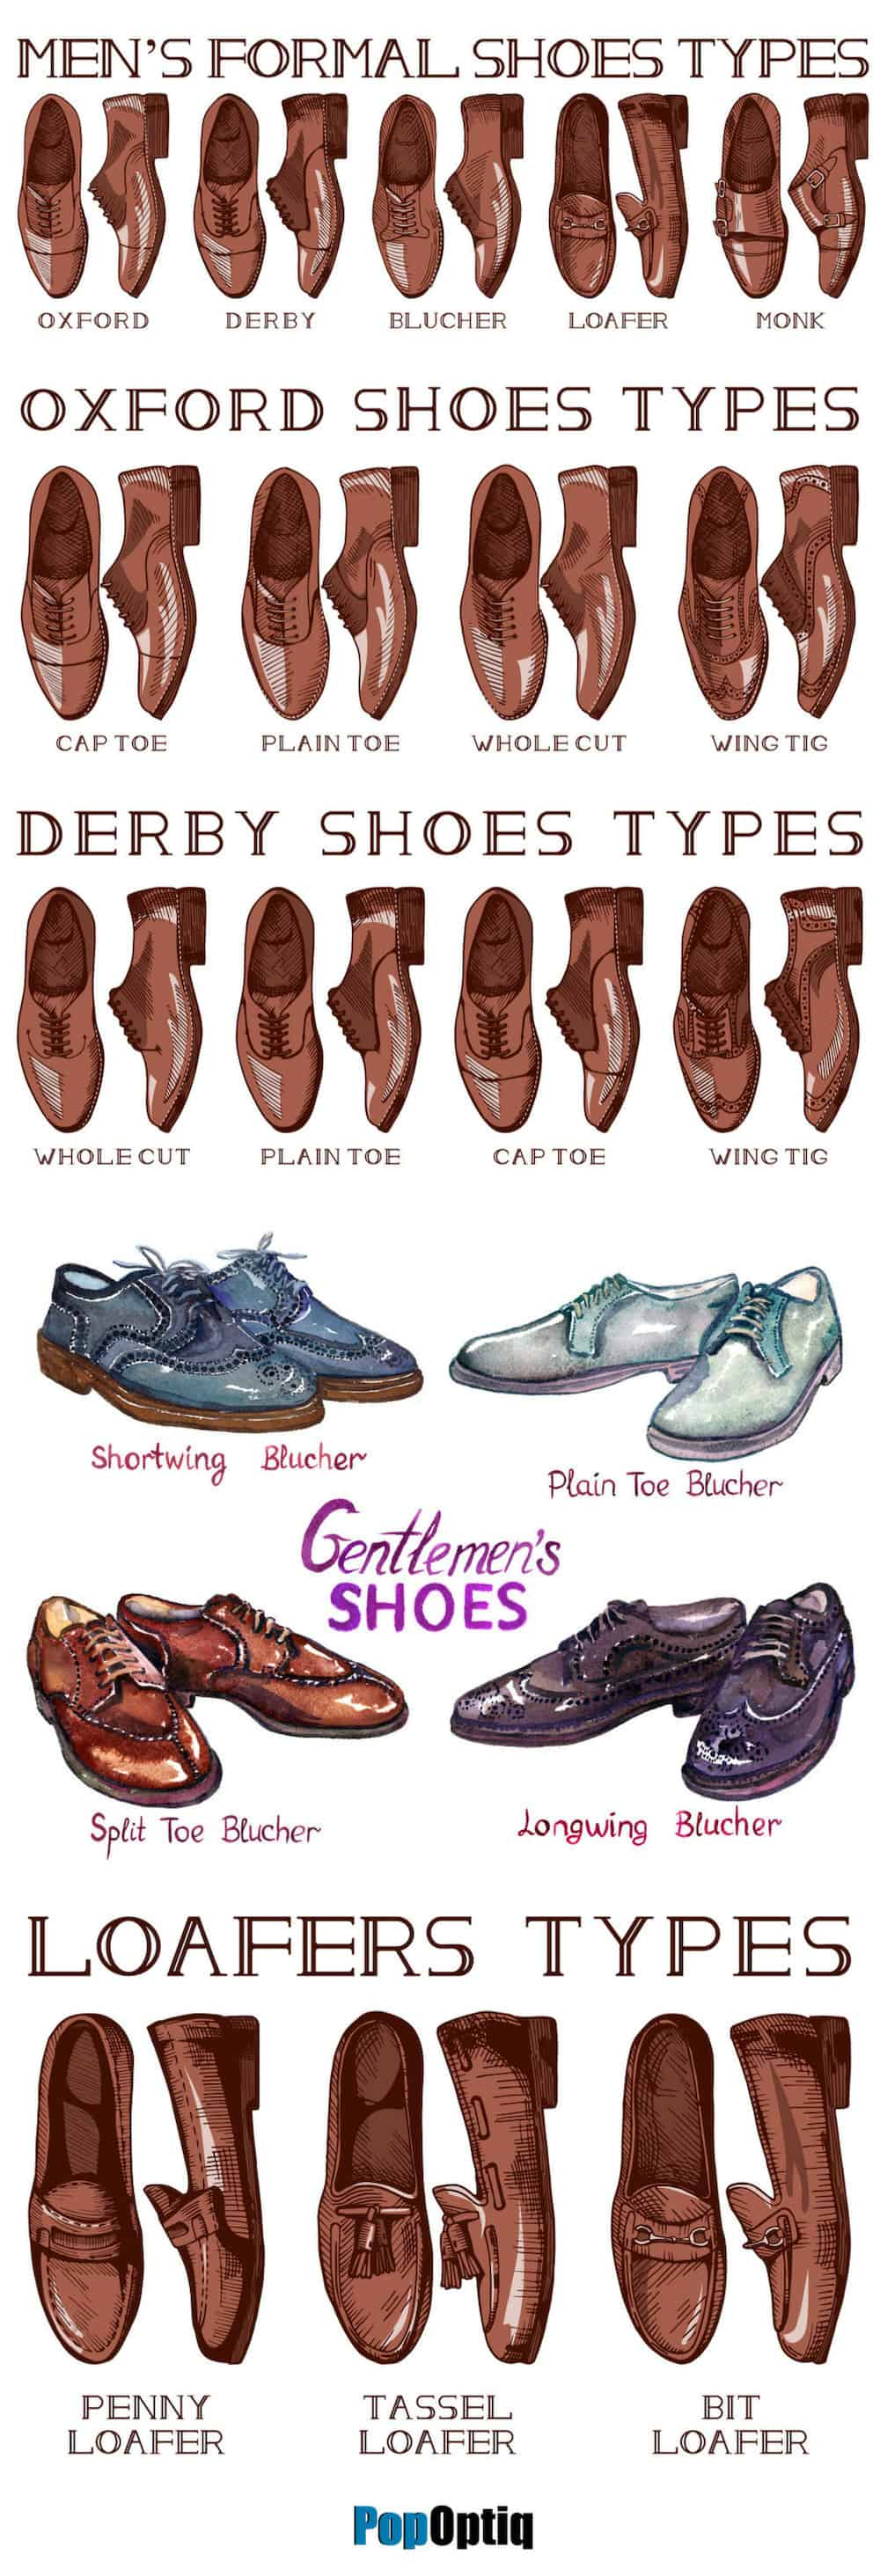 Chart setting out types of mens formal footwear and shoes